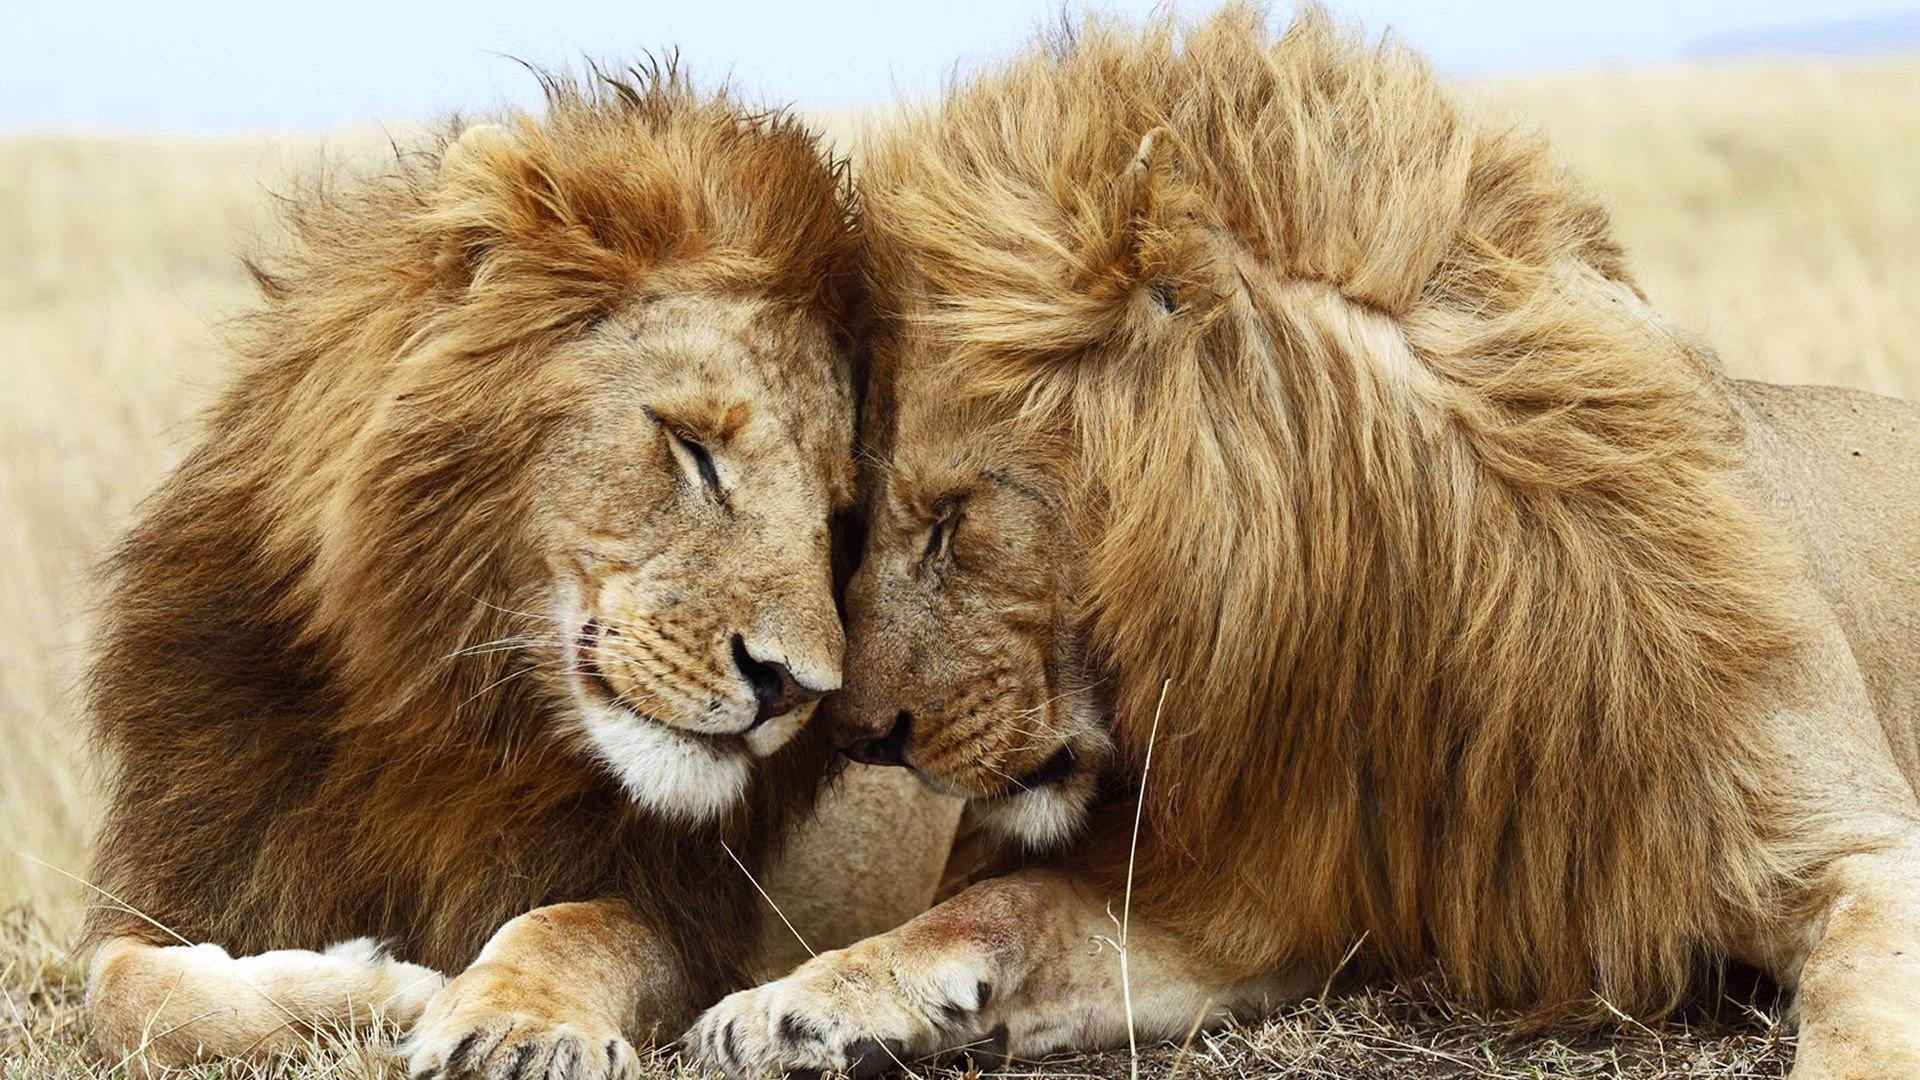 Free Lion High Quality Wallpaper Id255466 For Full Hd 1080p